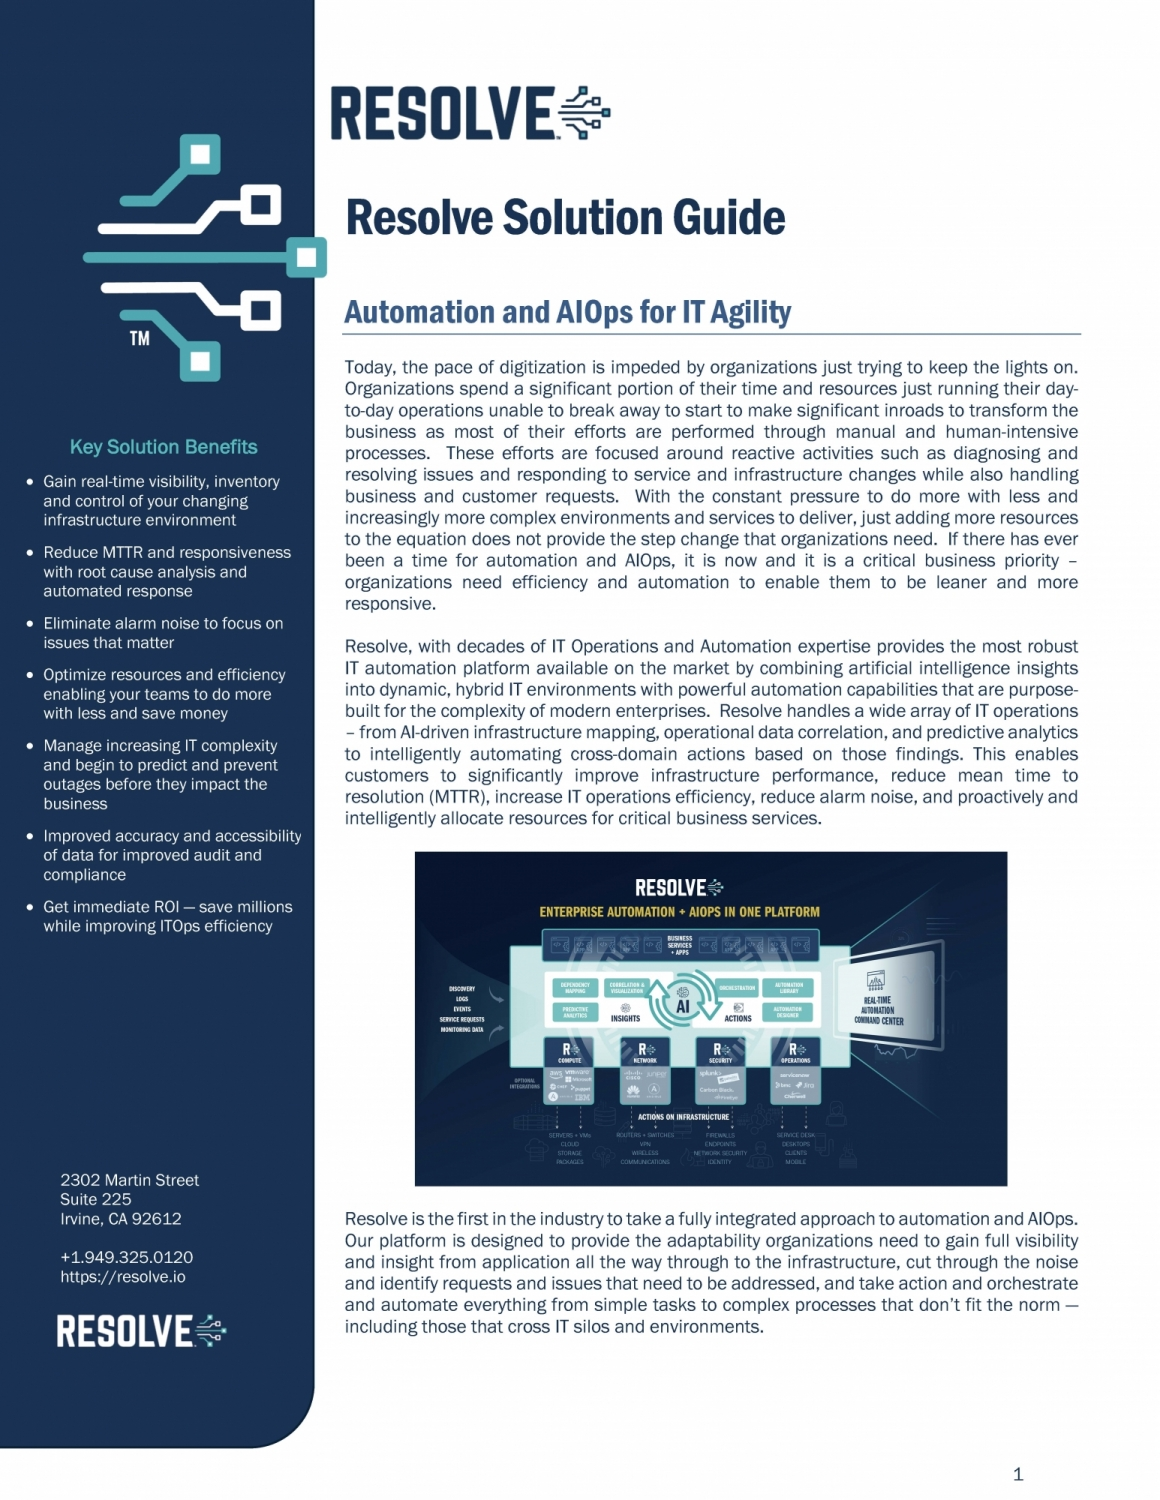 Resolve Solutions Guide